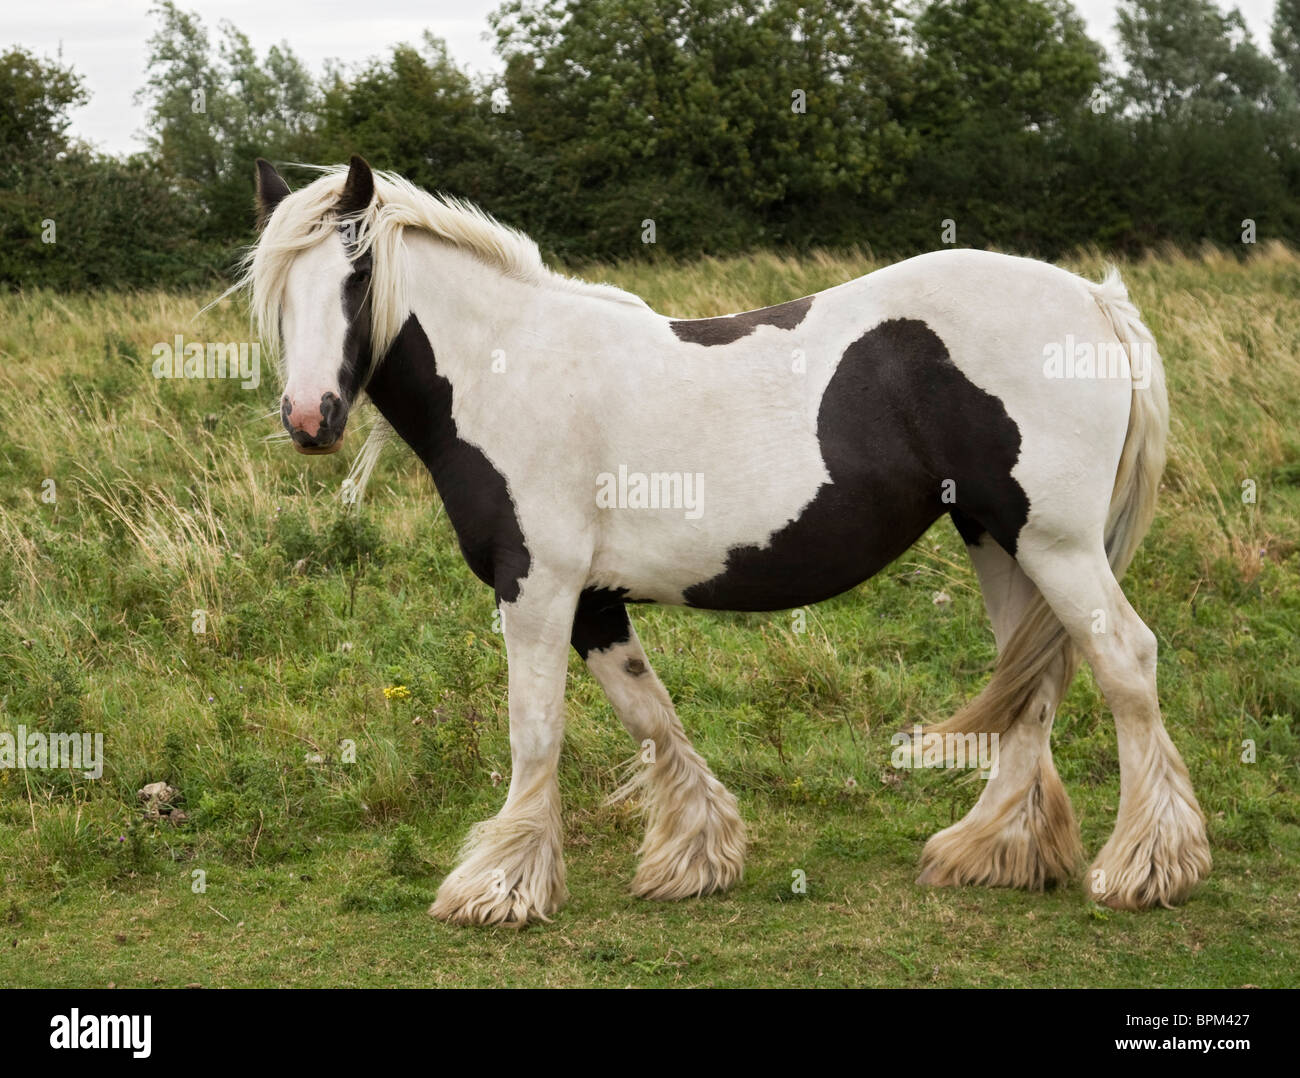 Travellers horse - Stock Image